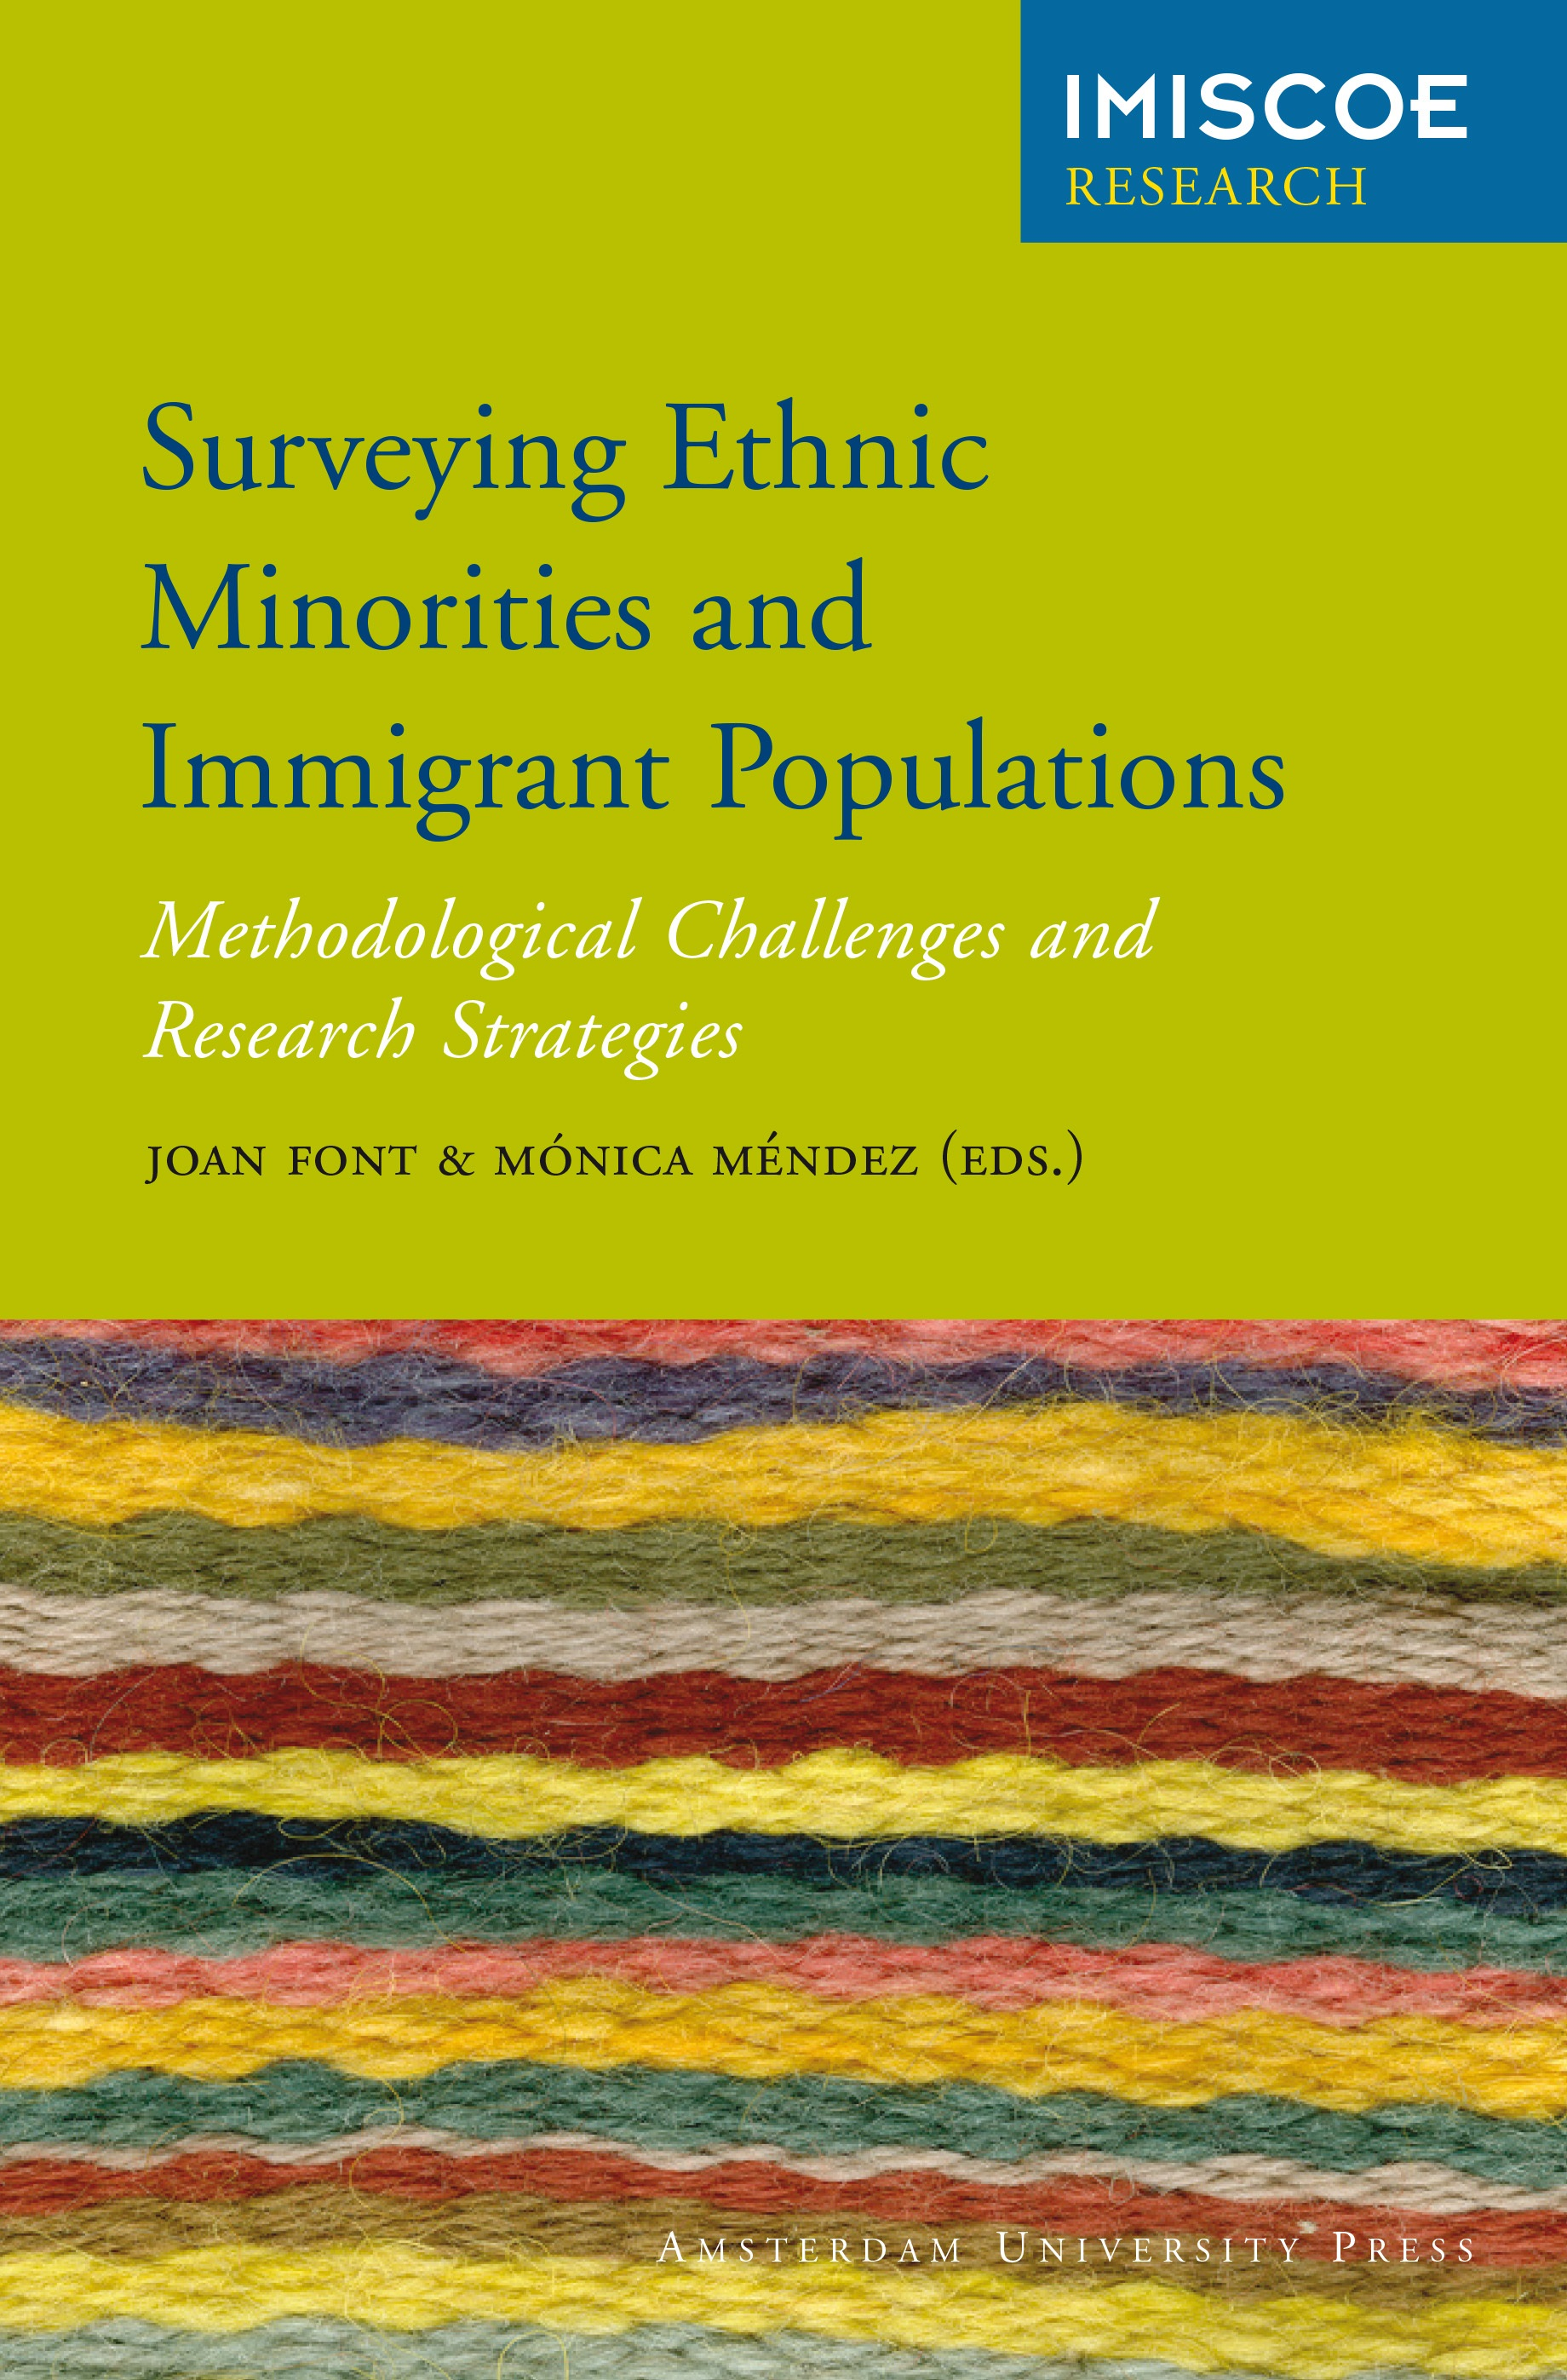 Cover of Surveying Ethnic Minorities and Immigrant Populations